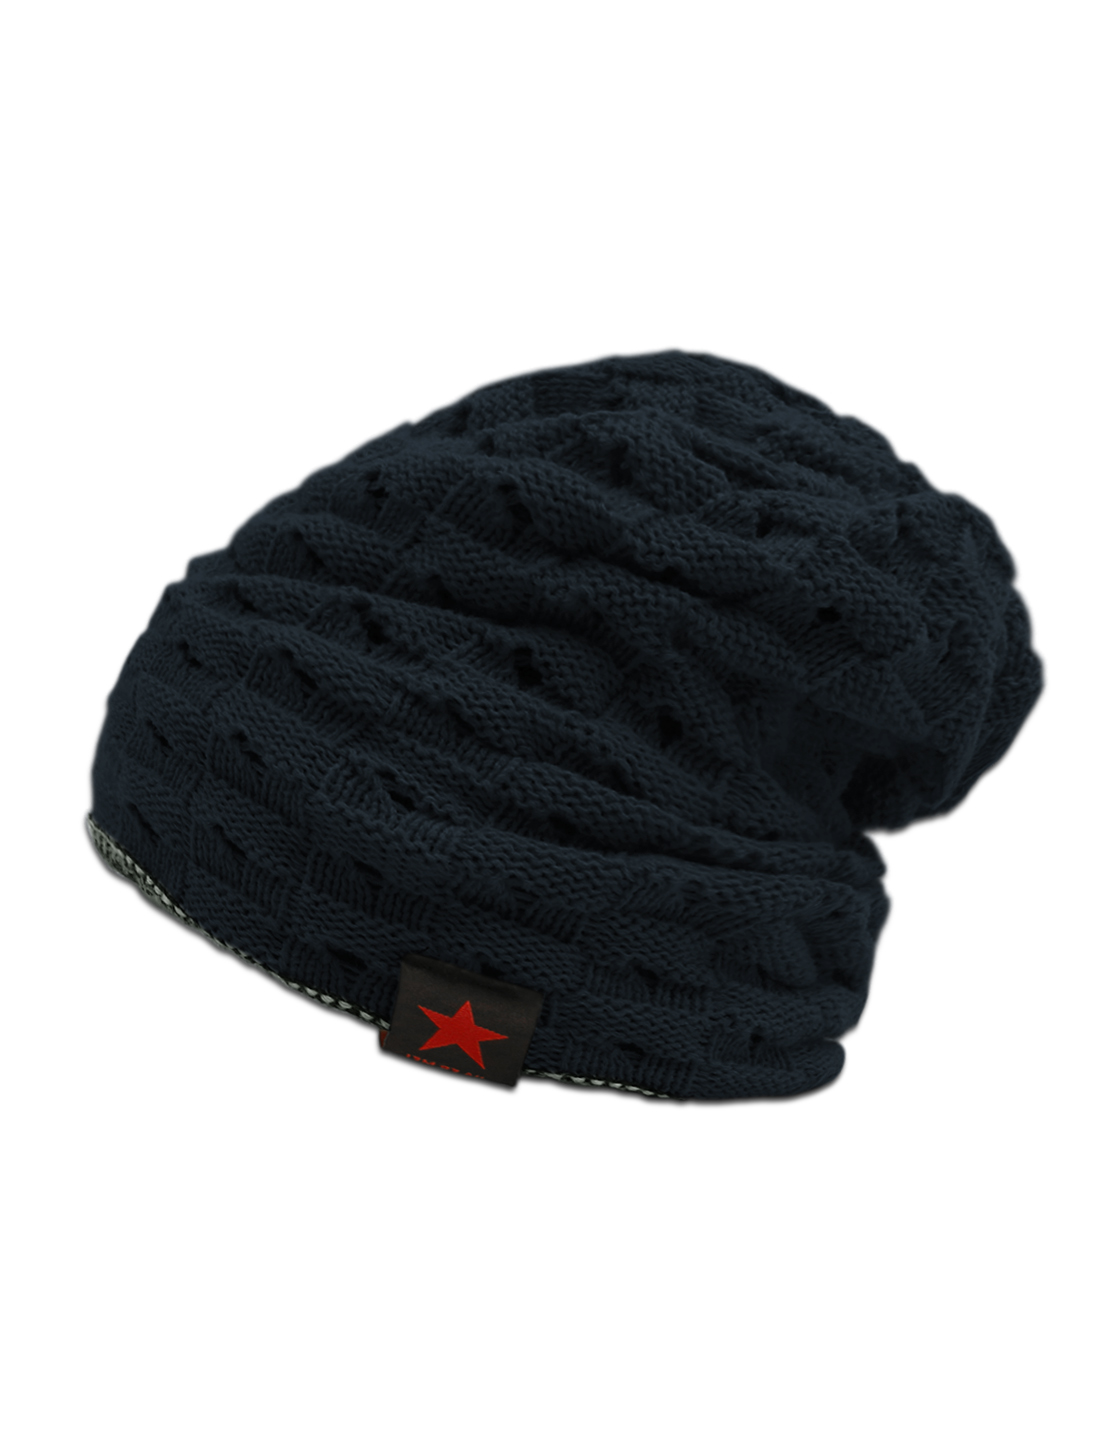 Unisex Hollow Out Design Reversible Knitted Beanie Hat Blue